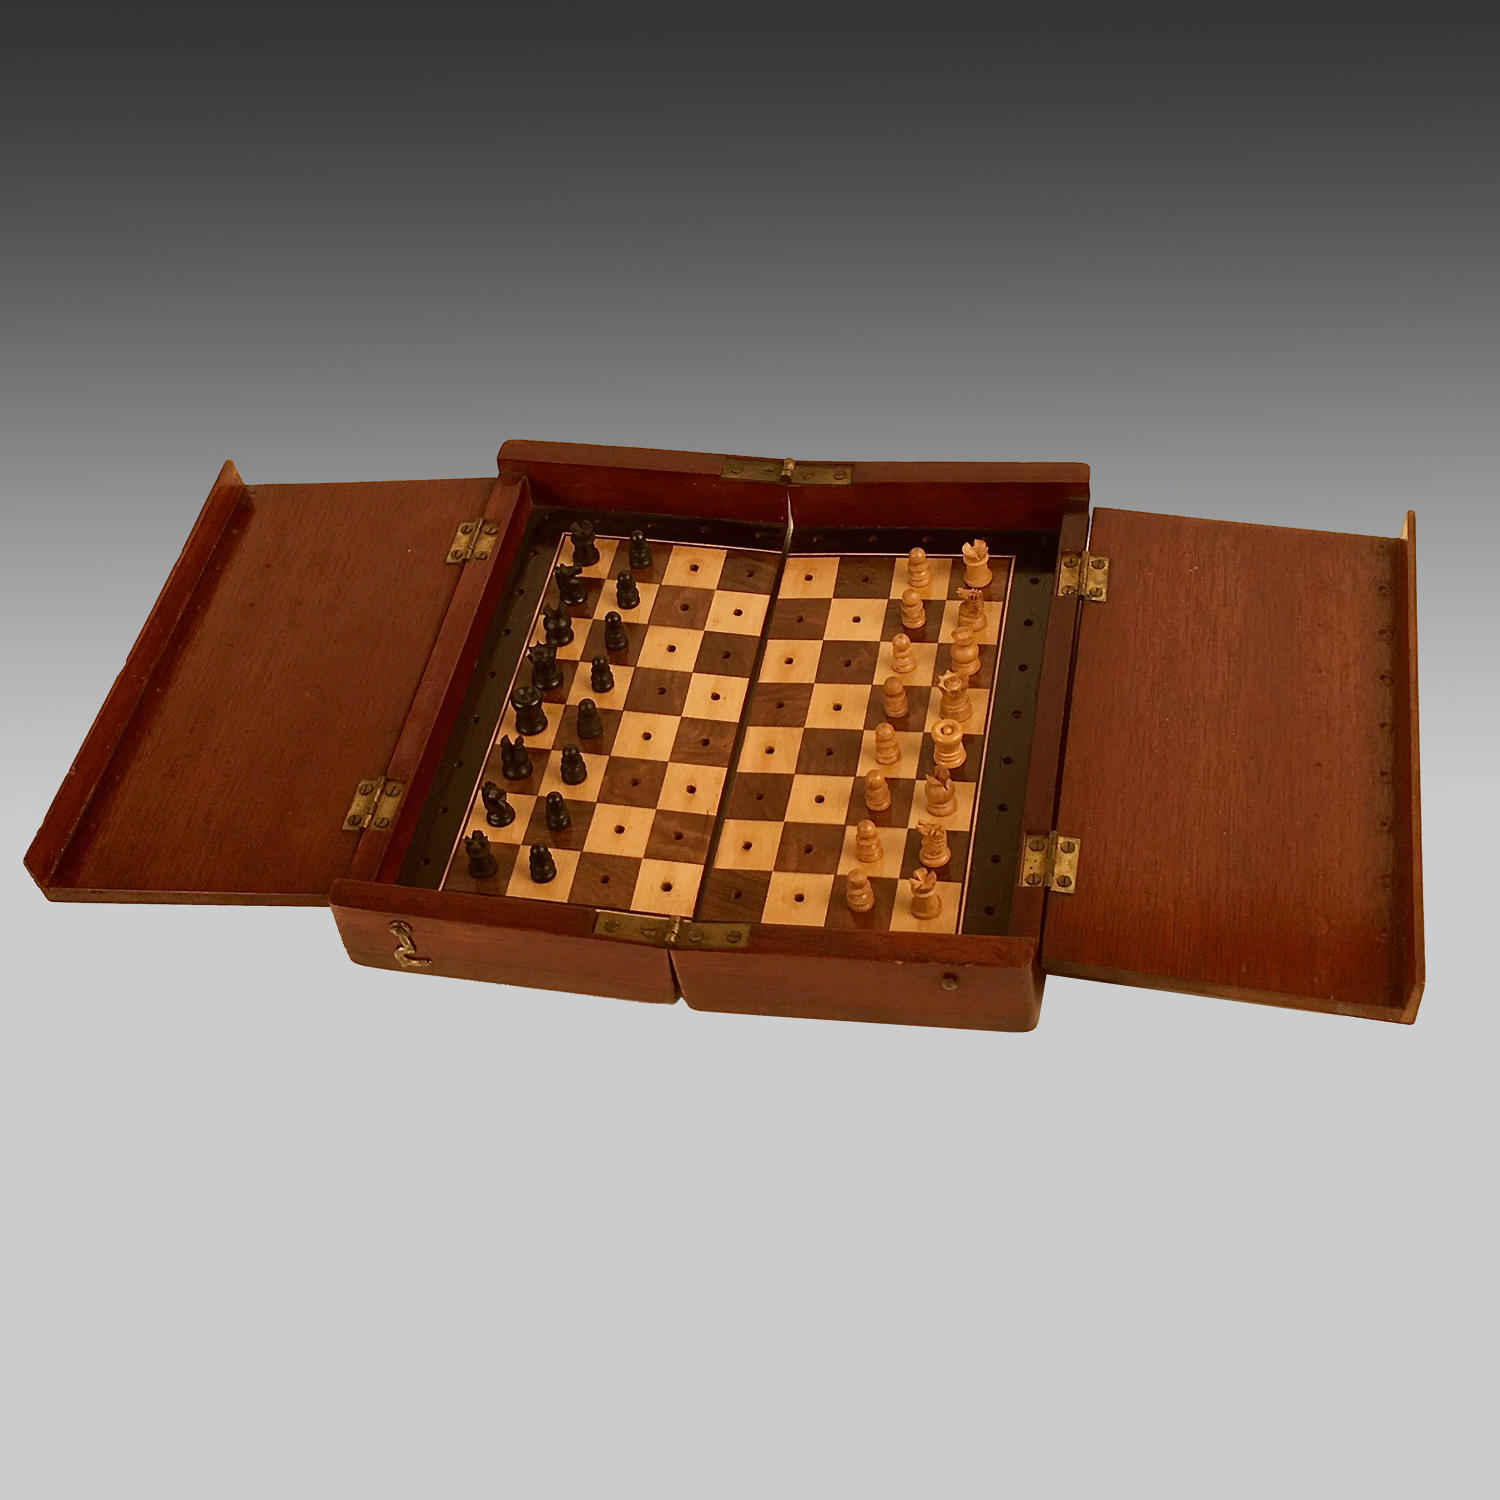 'The Whittington' mahogany cased travelling chess set